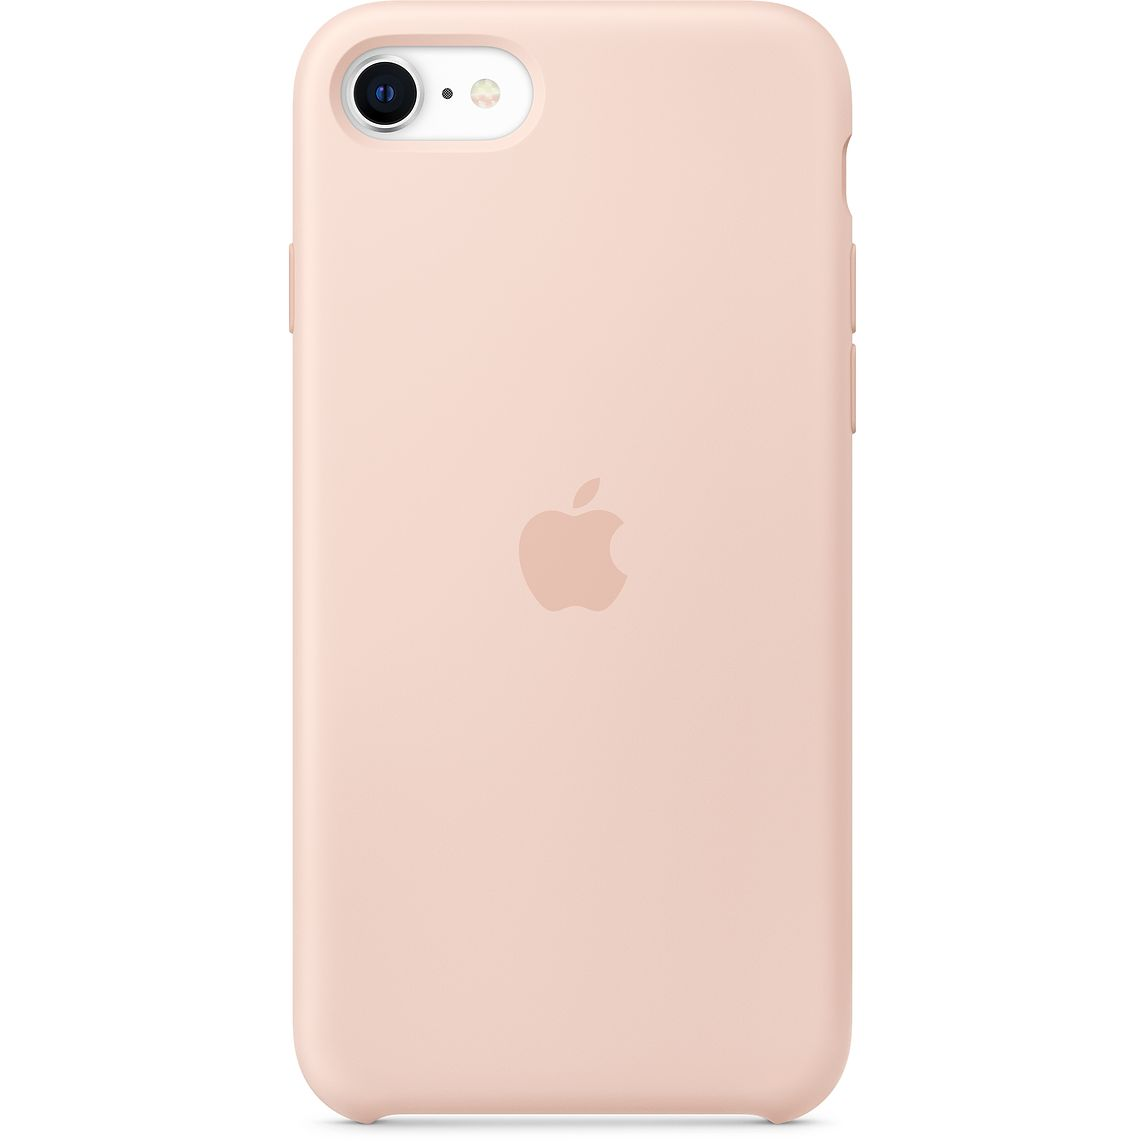 Apple iPhone SE Silicone Case Pink Sand (2020)